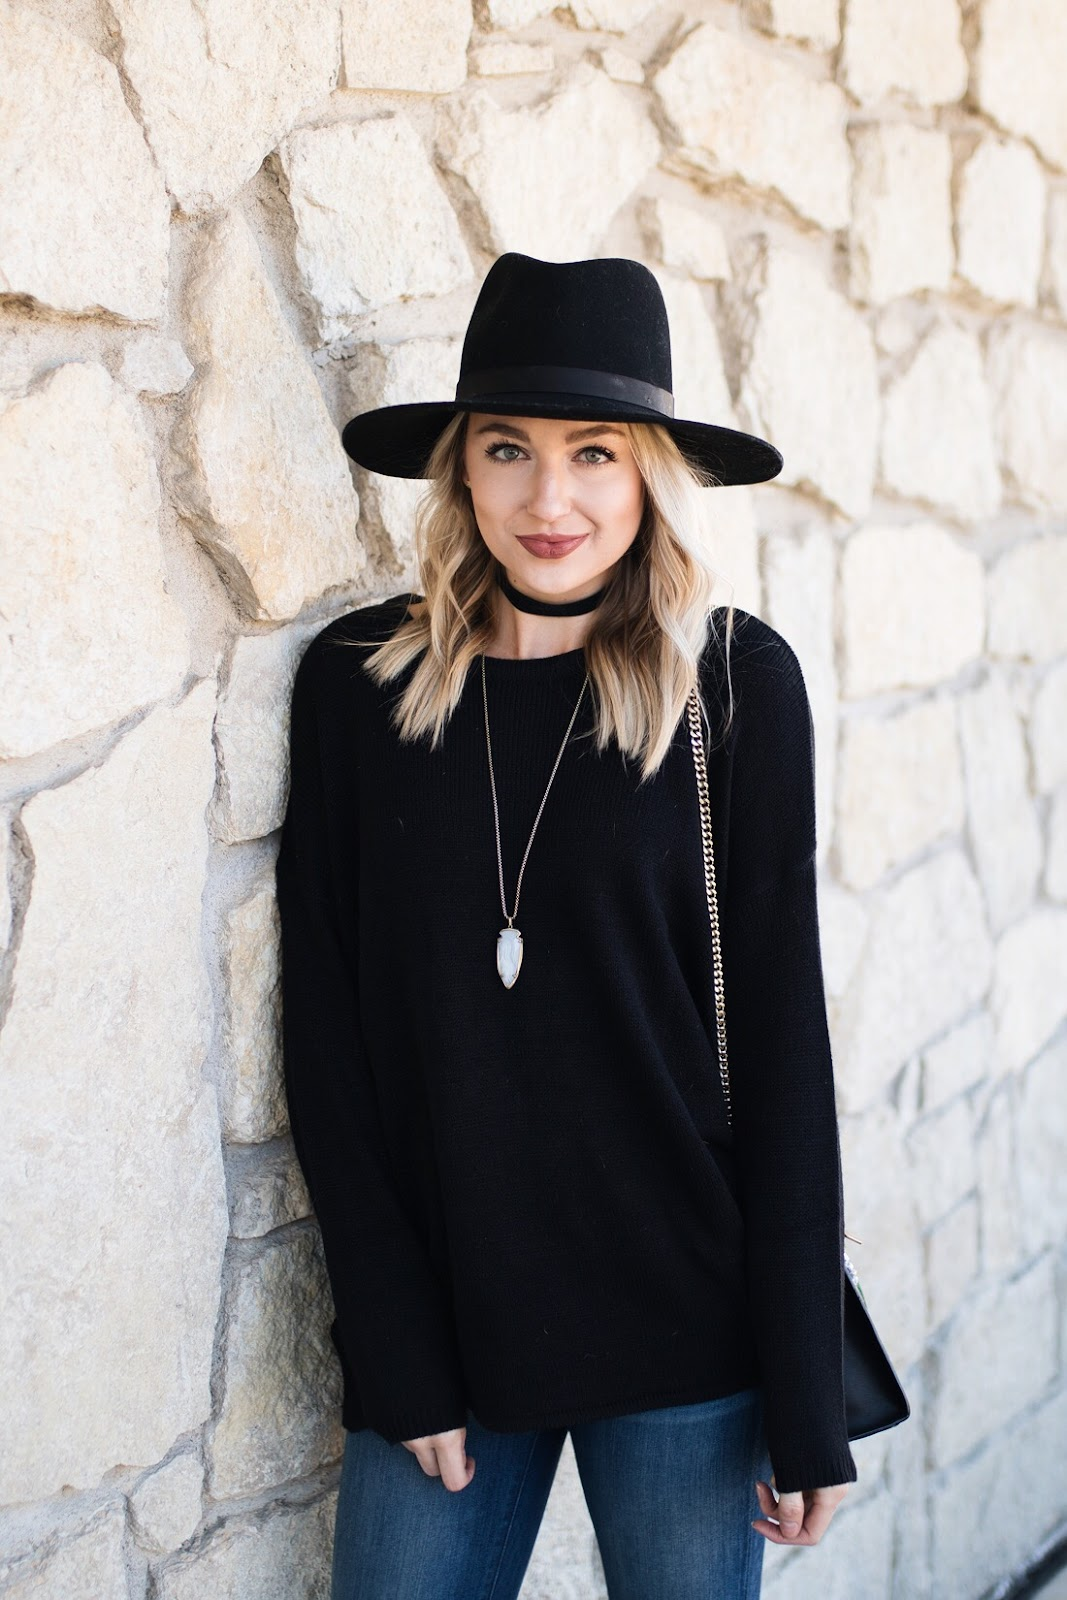 Black sweater under $20